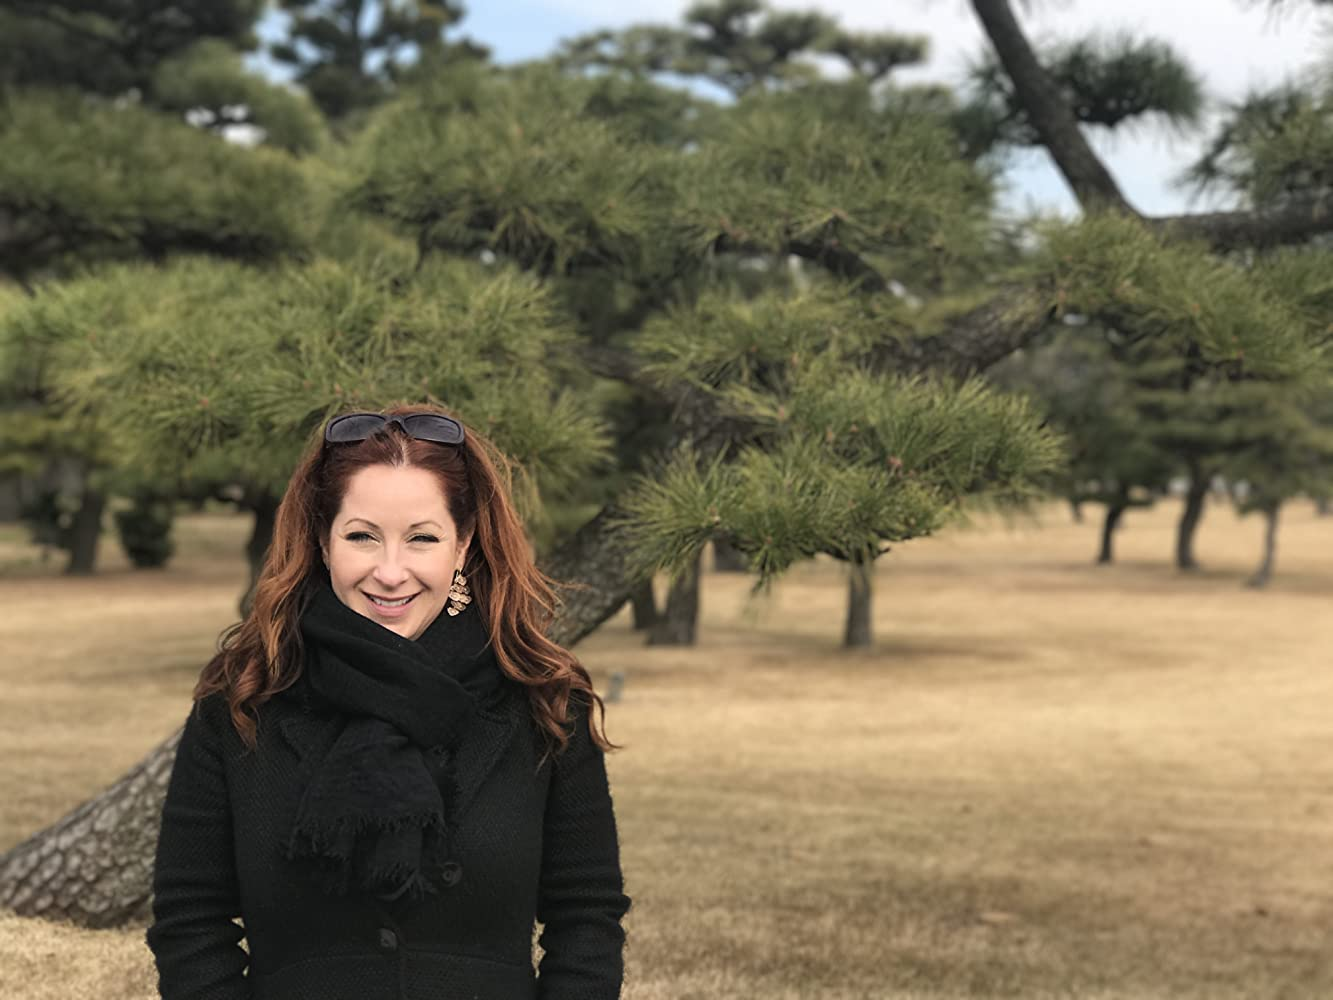 Dawn Garcia is a writer, activist, journalist, public speaker, and soon-to-be director. We spoke with Garcia about her motivation for writing.